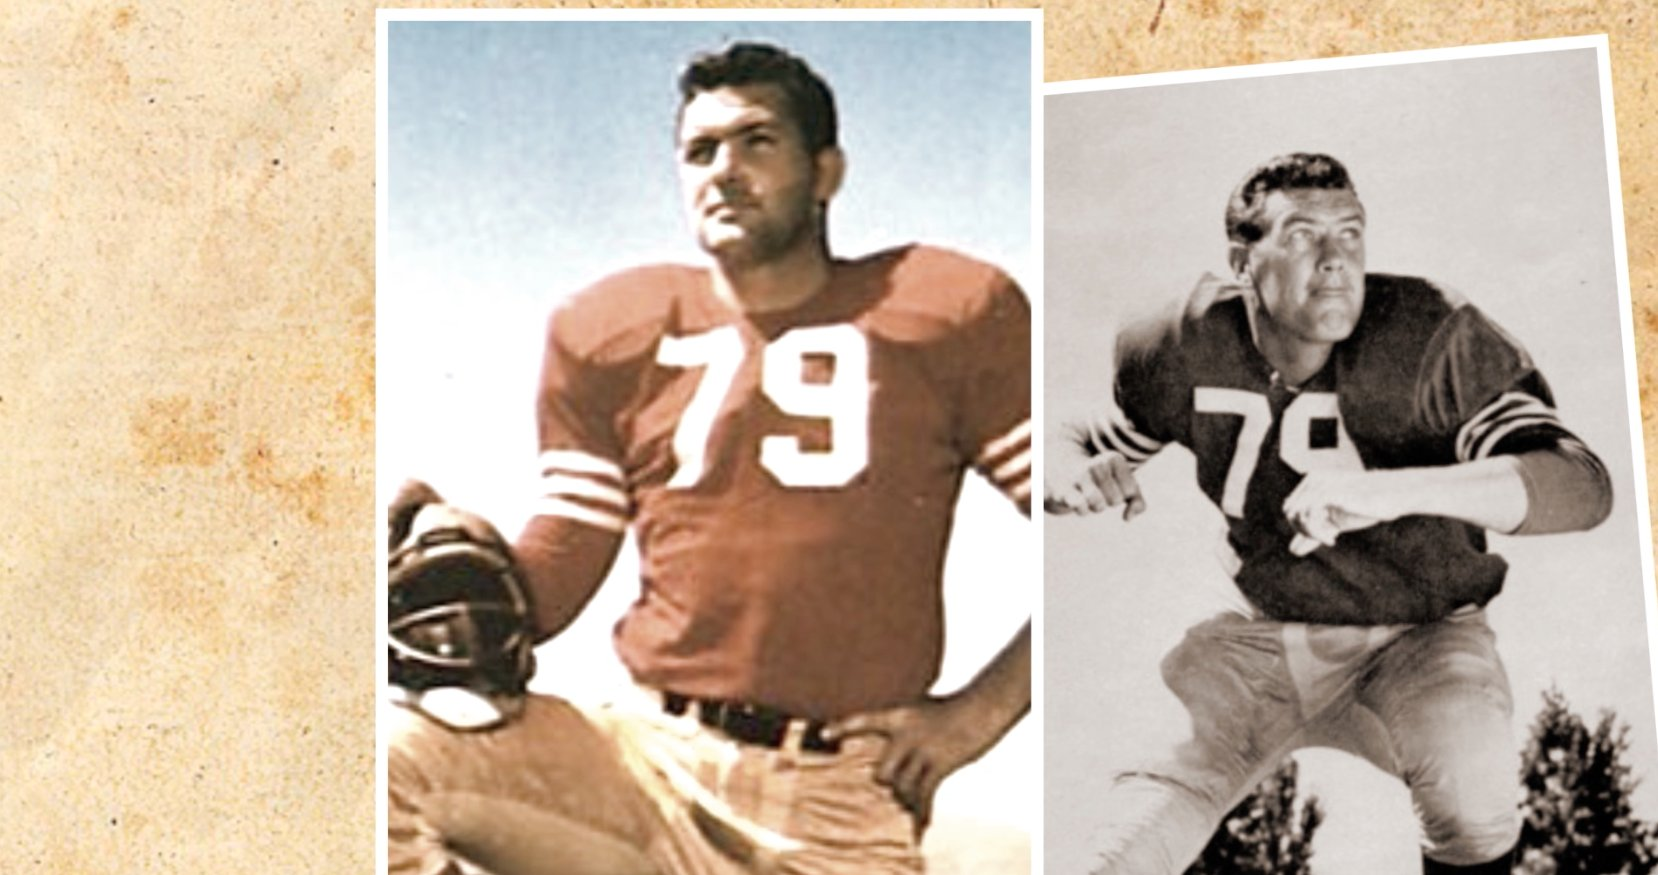 Remembering Bay Area legend, #49ers great and 1990 @ProFootballHOF inductee Bob St. Clair on his birthday. https://t.co/Hmwi0esIX6